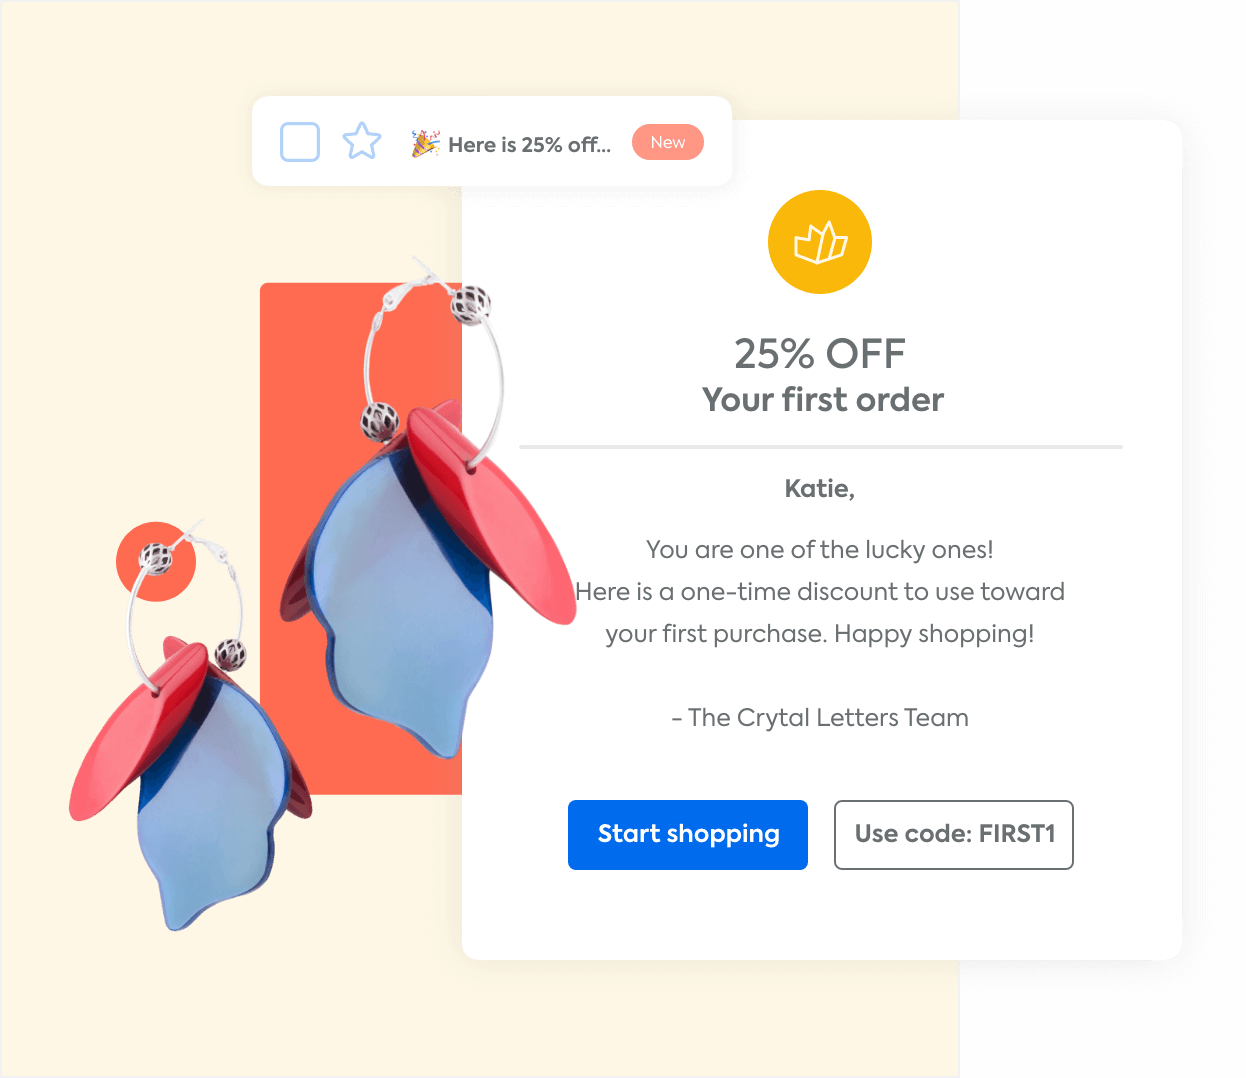 An automated marketing email offering a discount on a shopper's first order and a pair of earrings